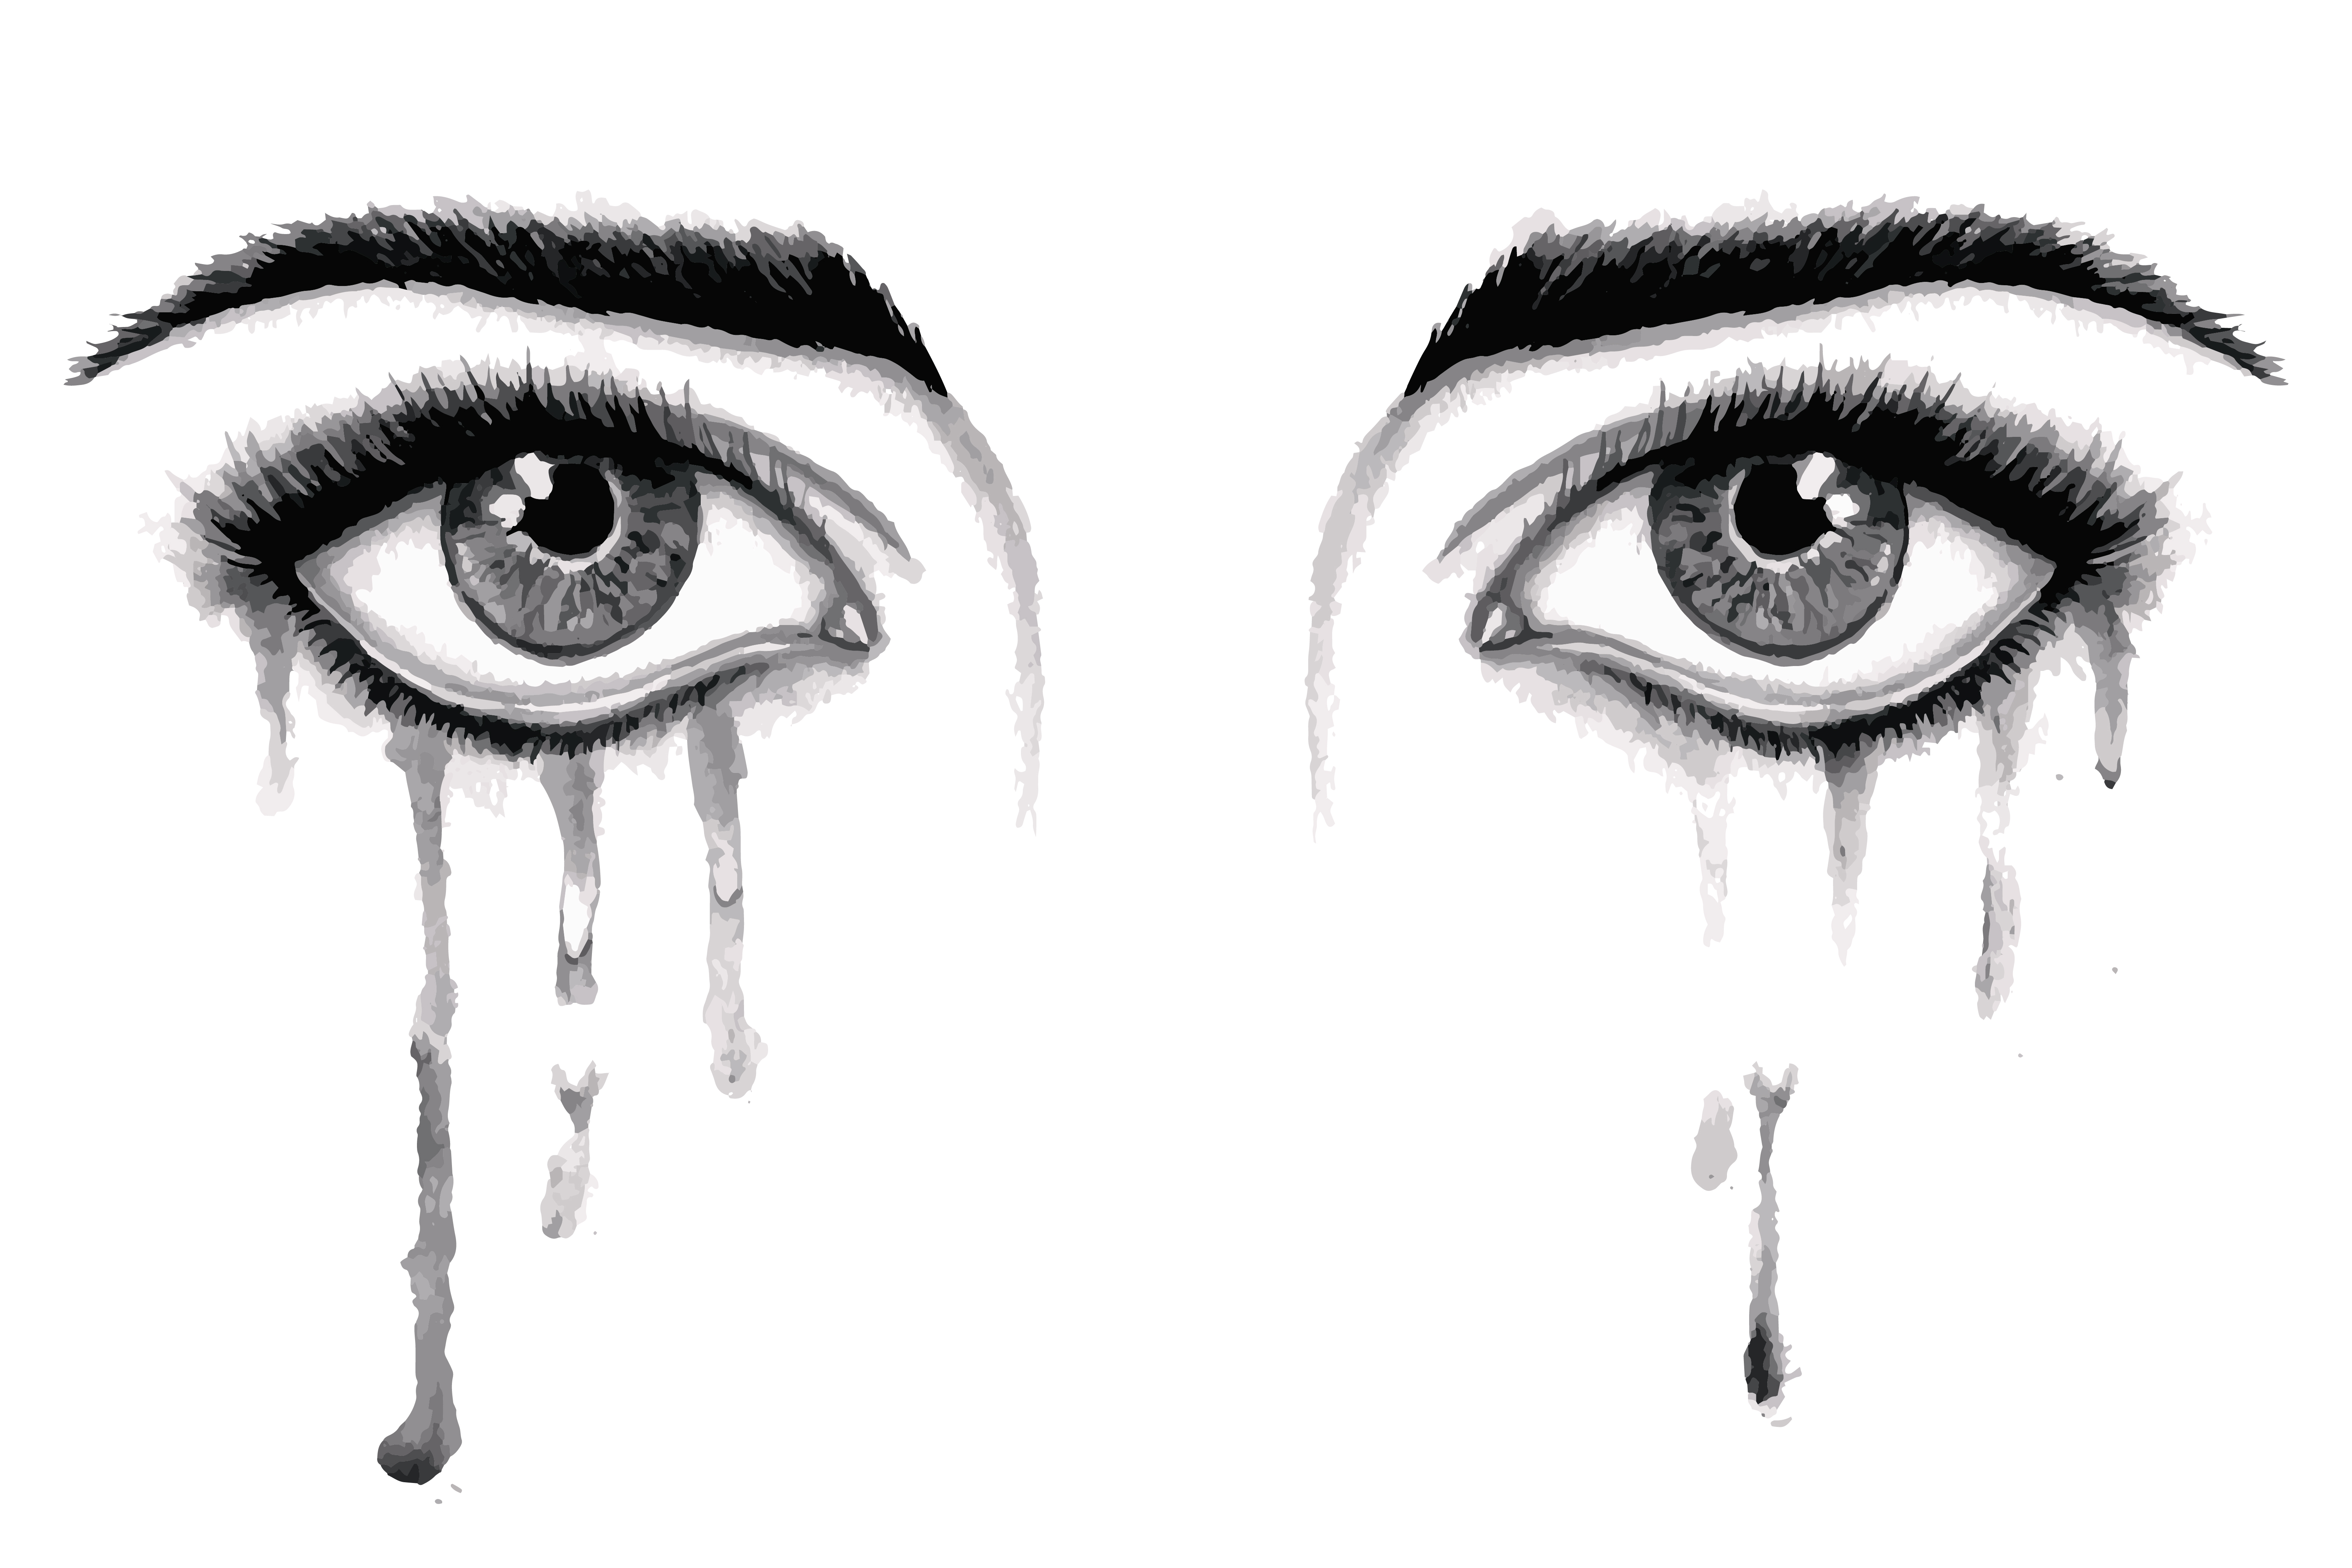 6250x4167 Grief Counseling Program Article On Illustrations On Grief Aihcp